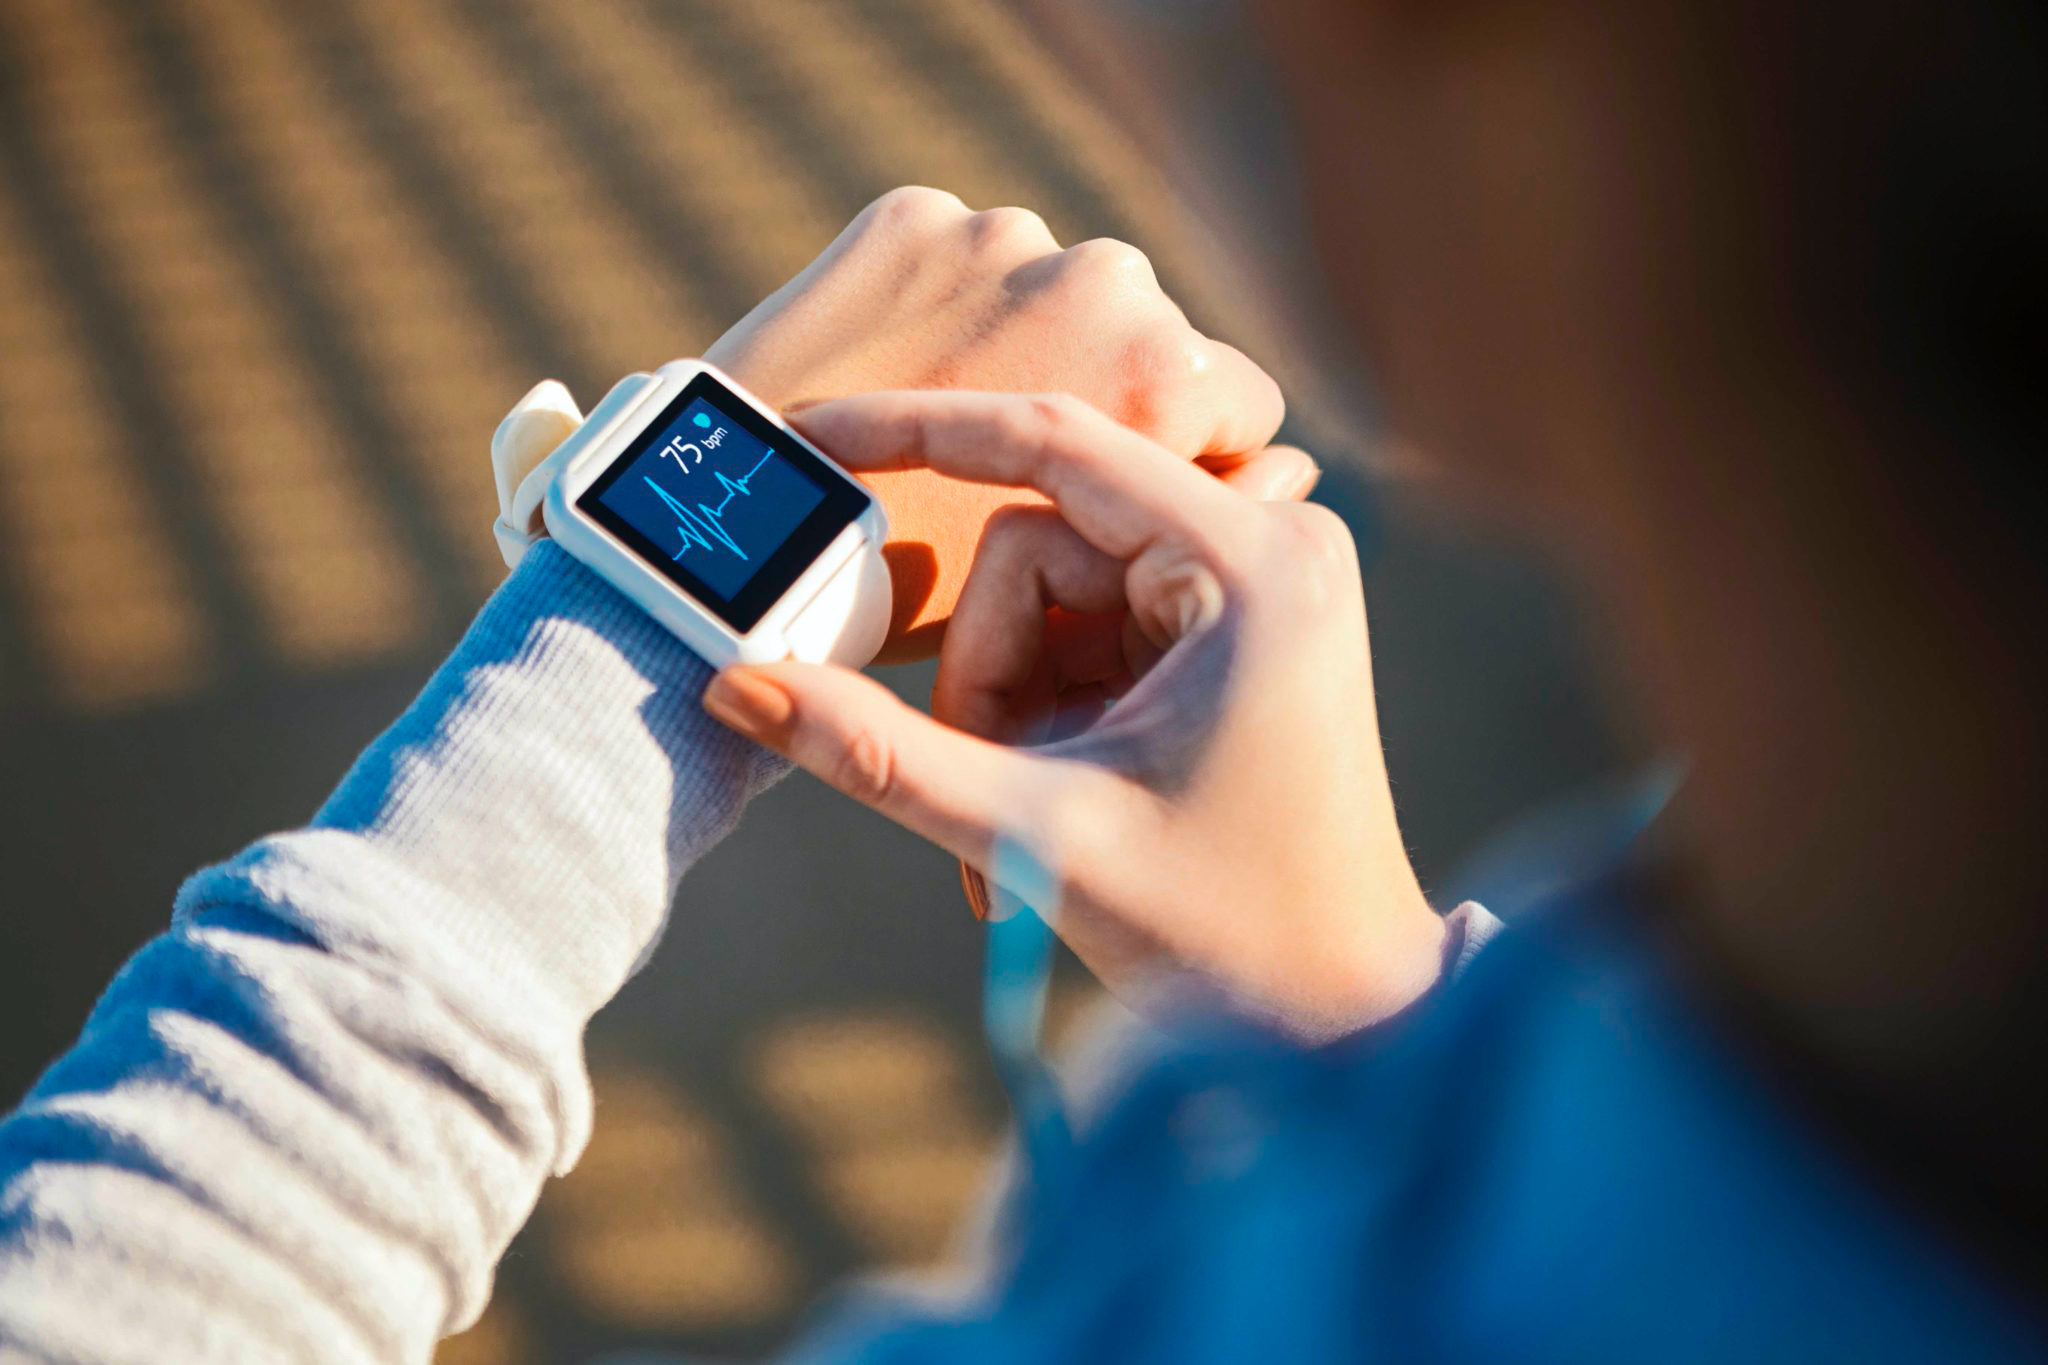 phot o of a women checking a health wearable watch